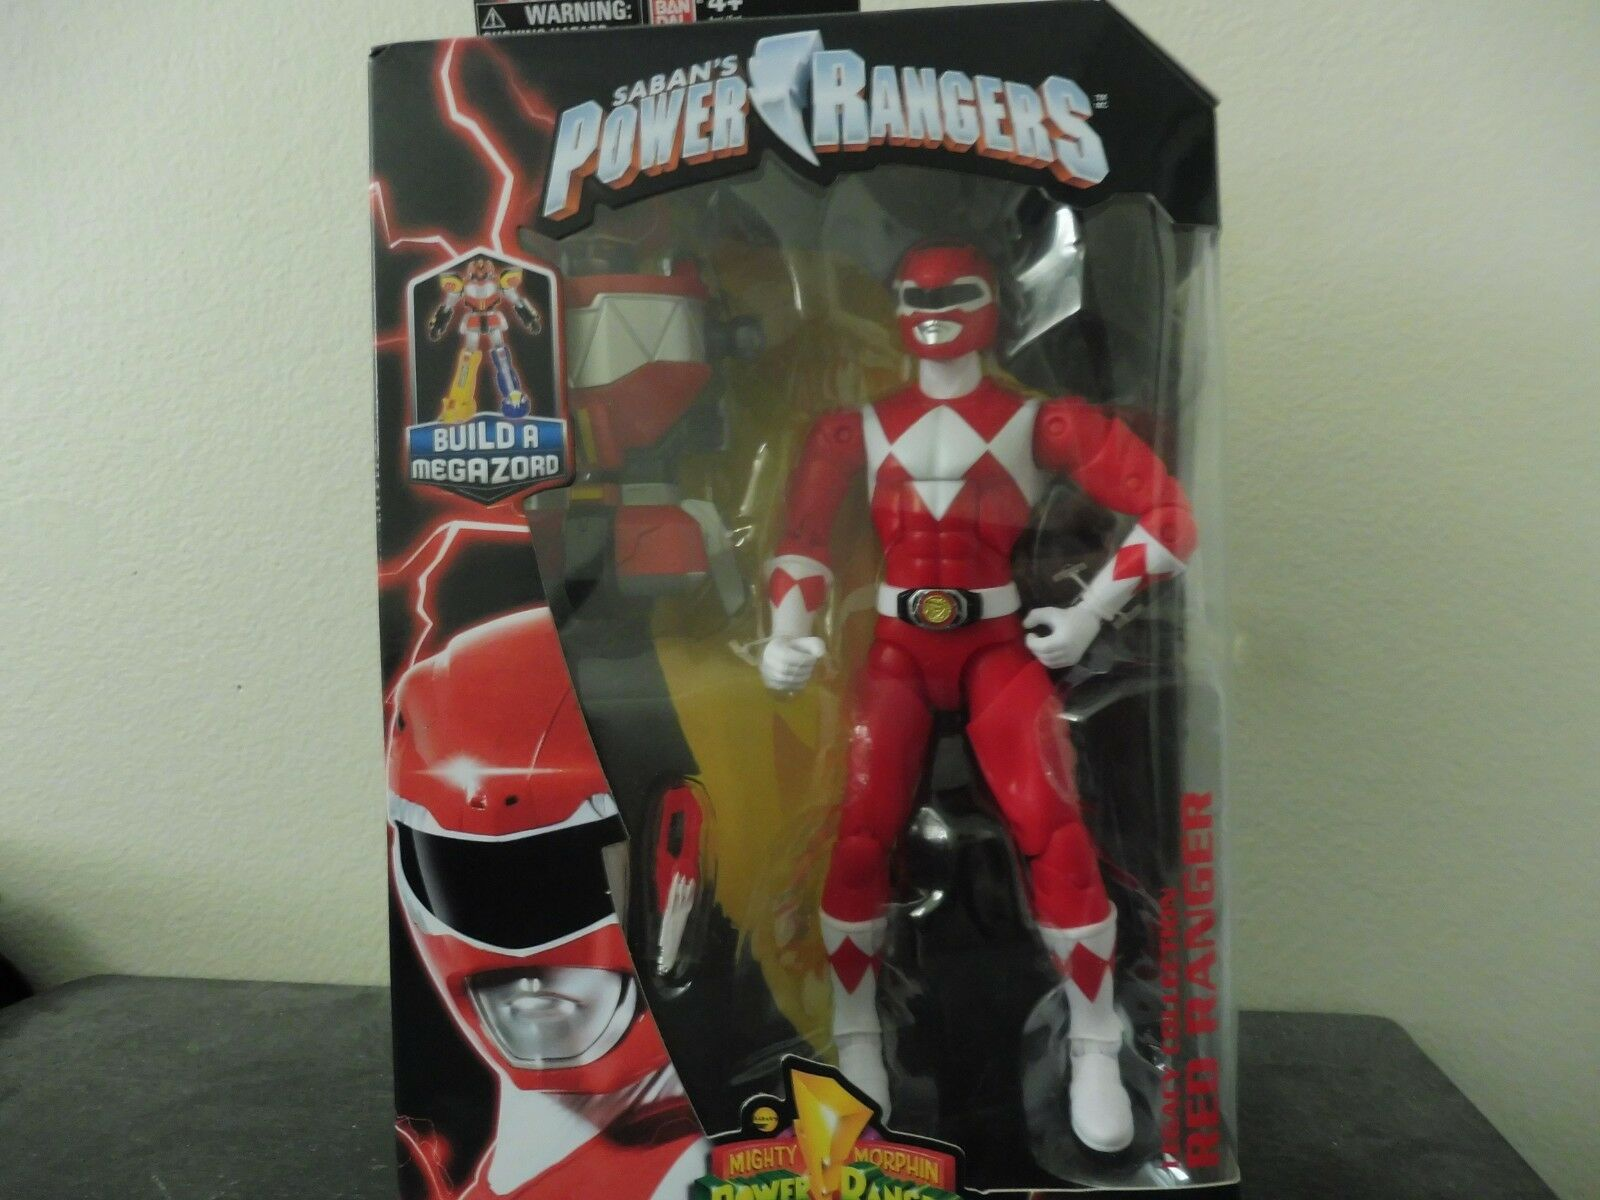 Power Rangers Legacy Collection ROT Ranger Action Figure USA Shipping only